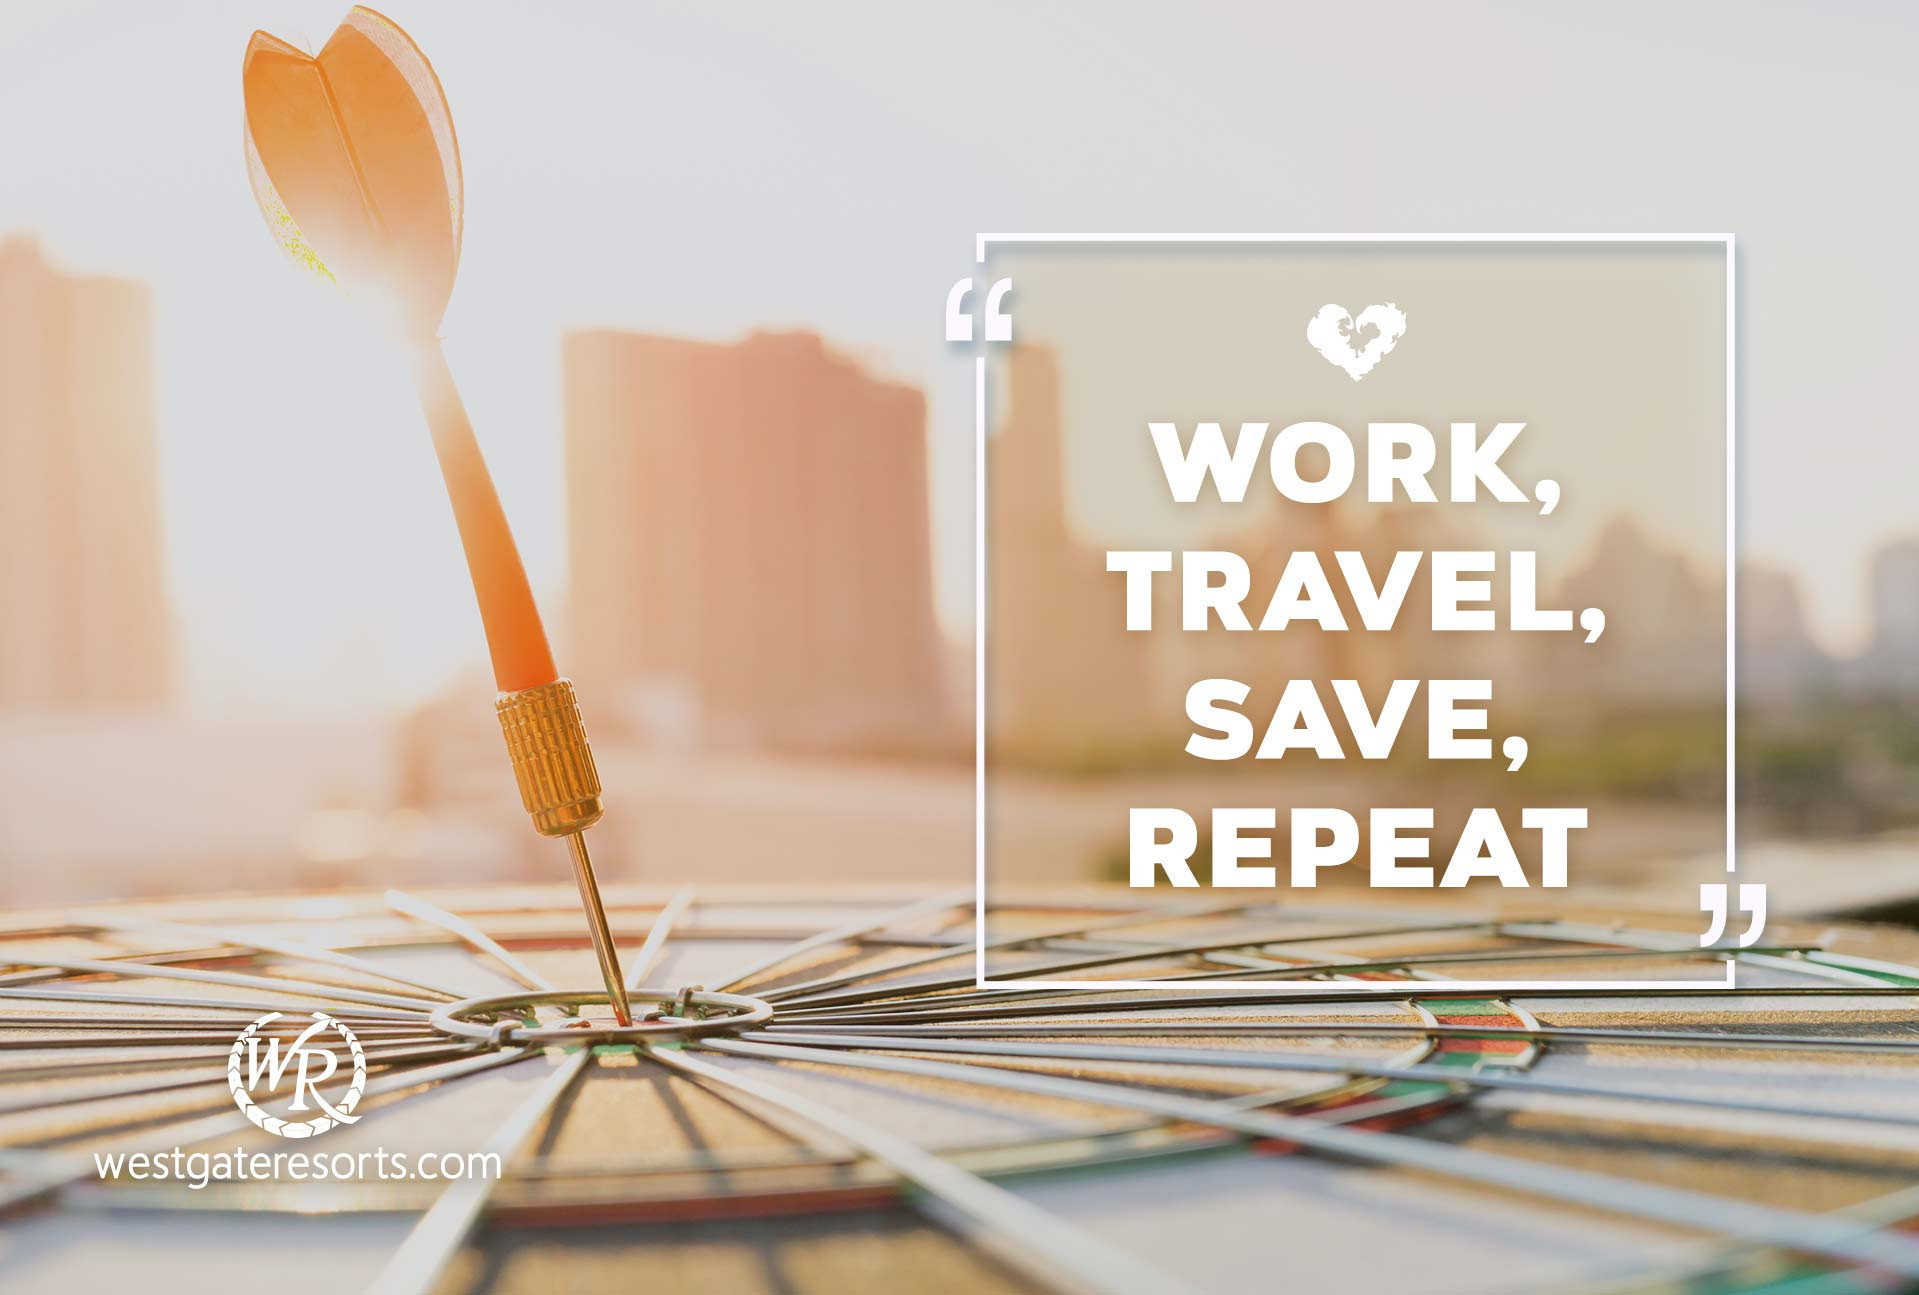 Work, Travel, Save, Repeat. | Travel Motivational Quotes